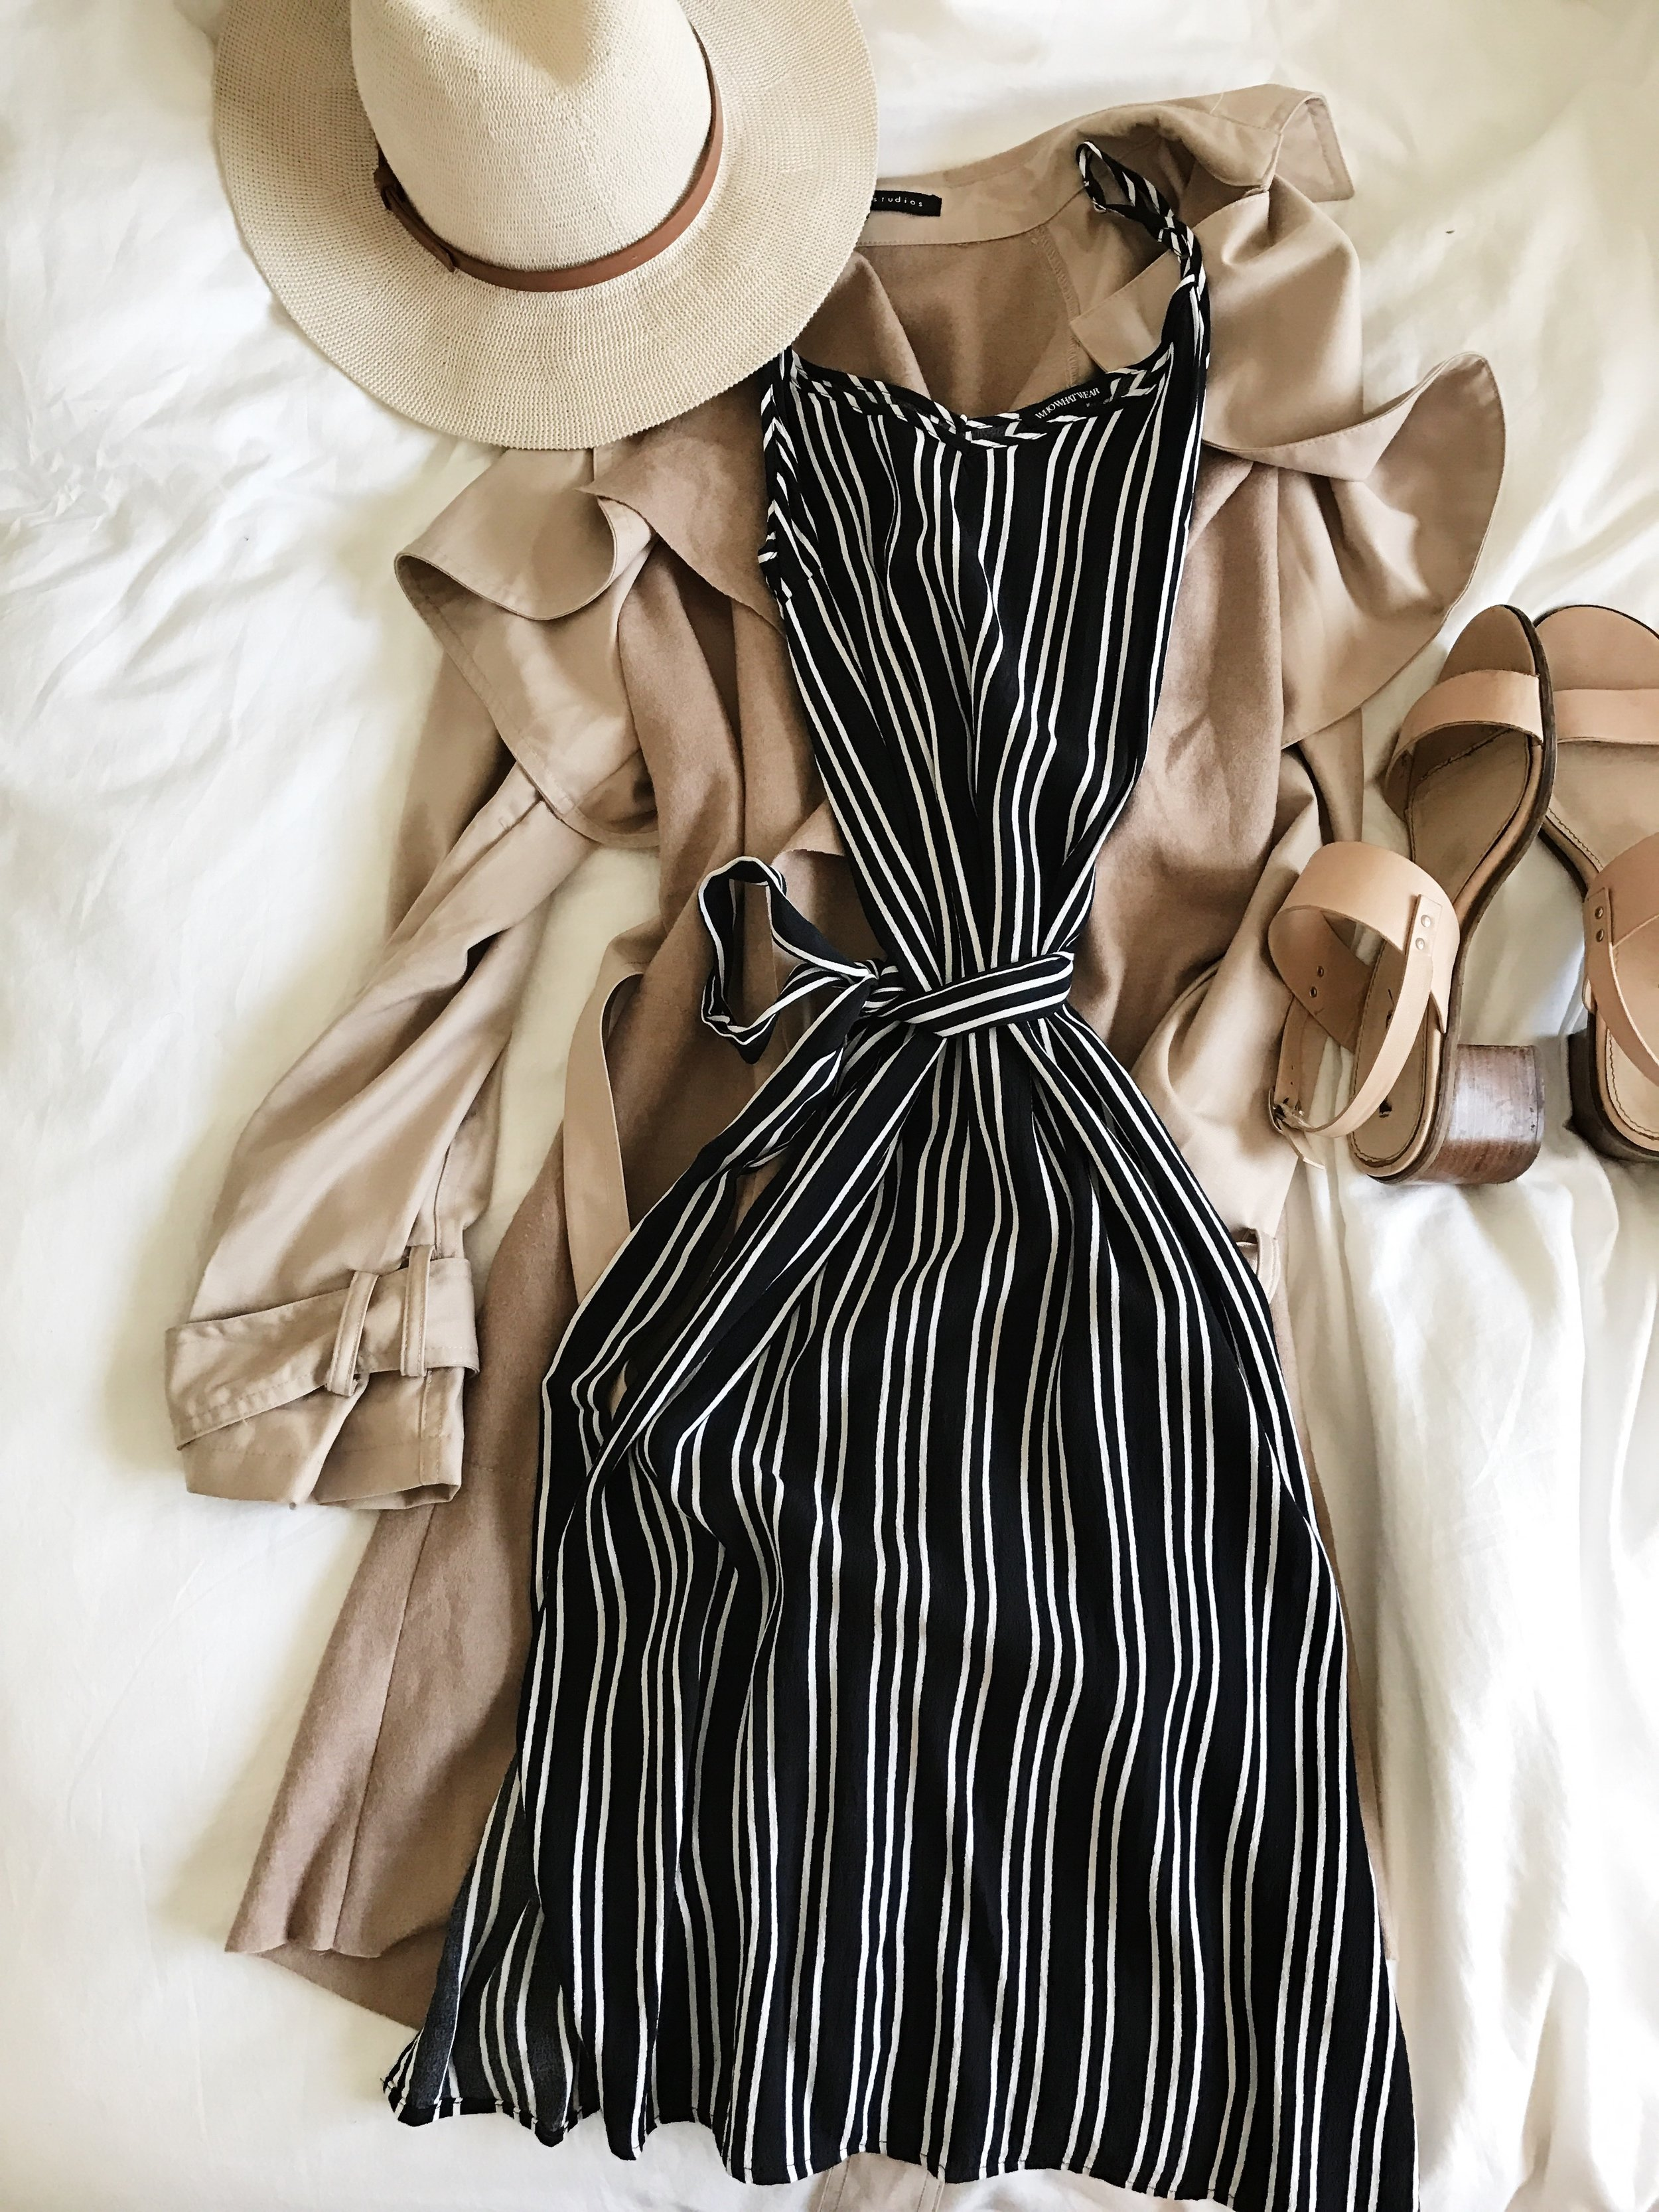 DAY THREE Striped dress // trench // heels A little bit nicer (but still in vacay mode) ensemble for dinner on the Seine and the Arc de Triomphe!